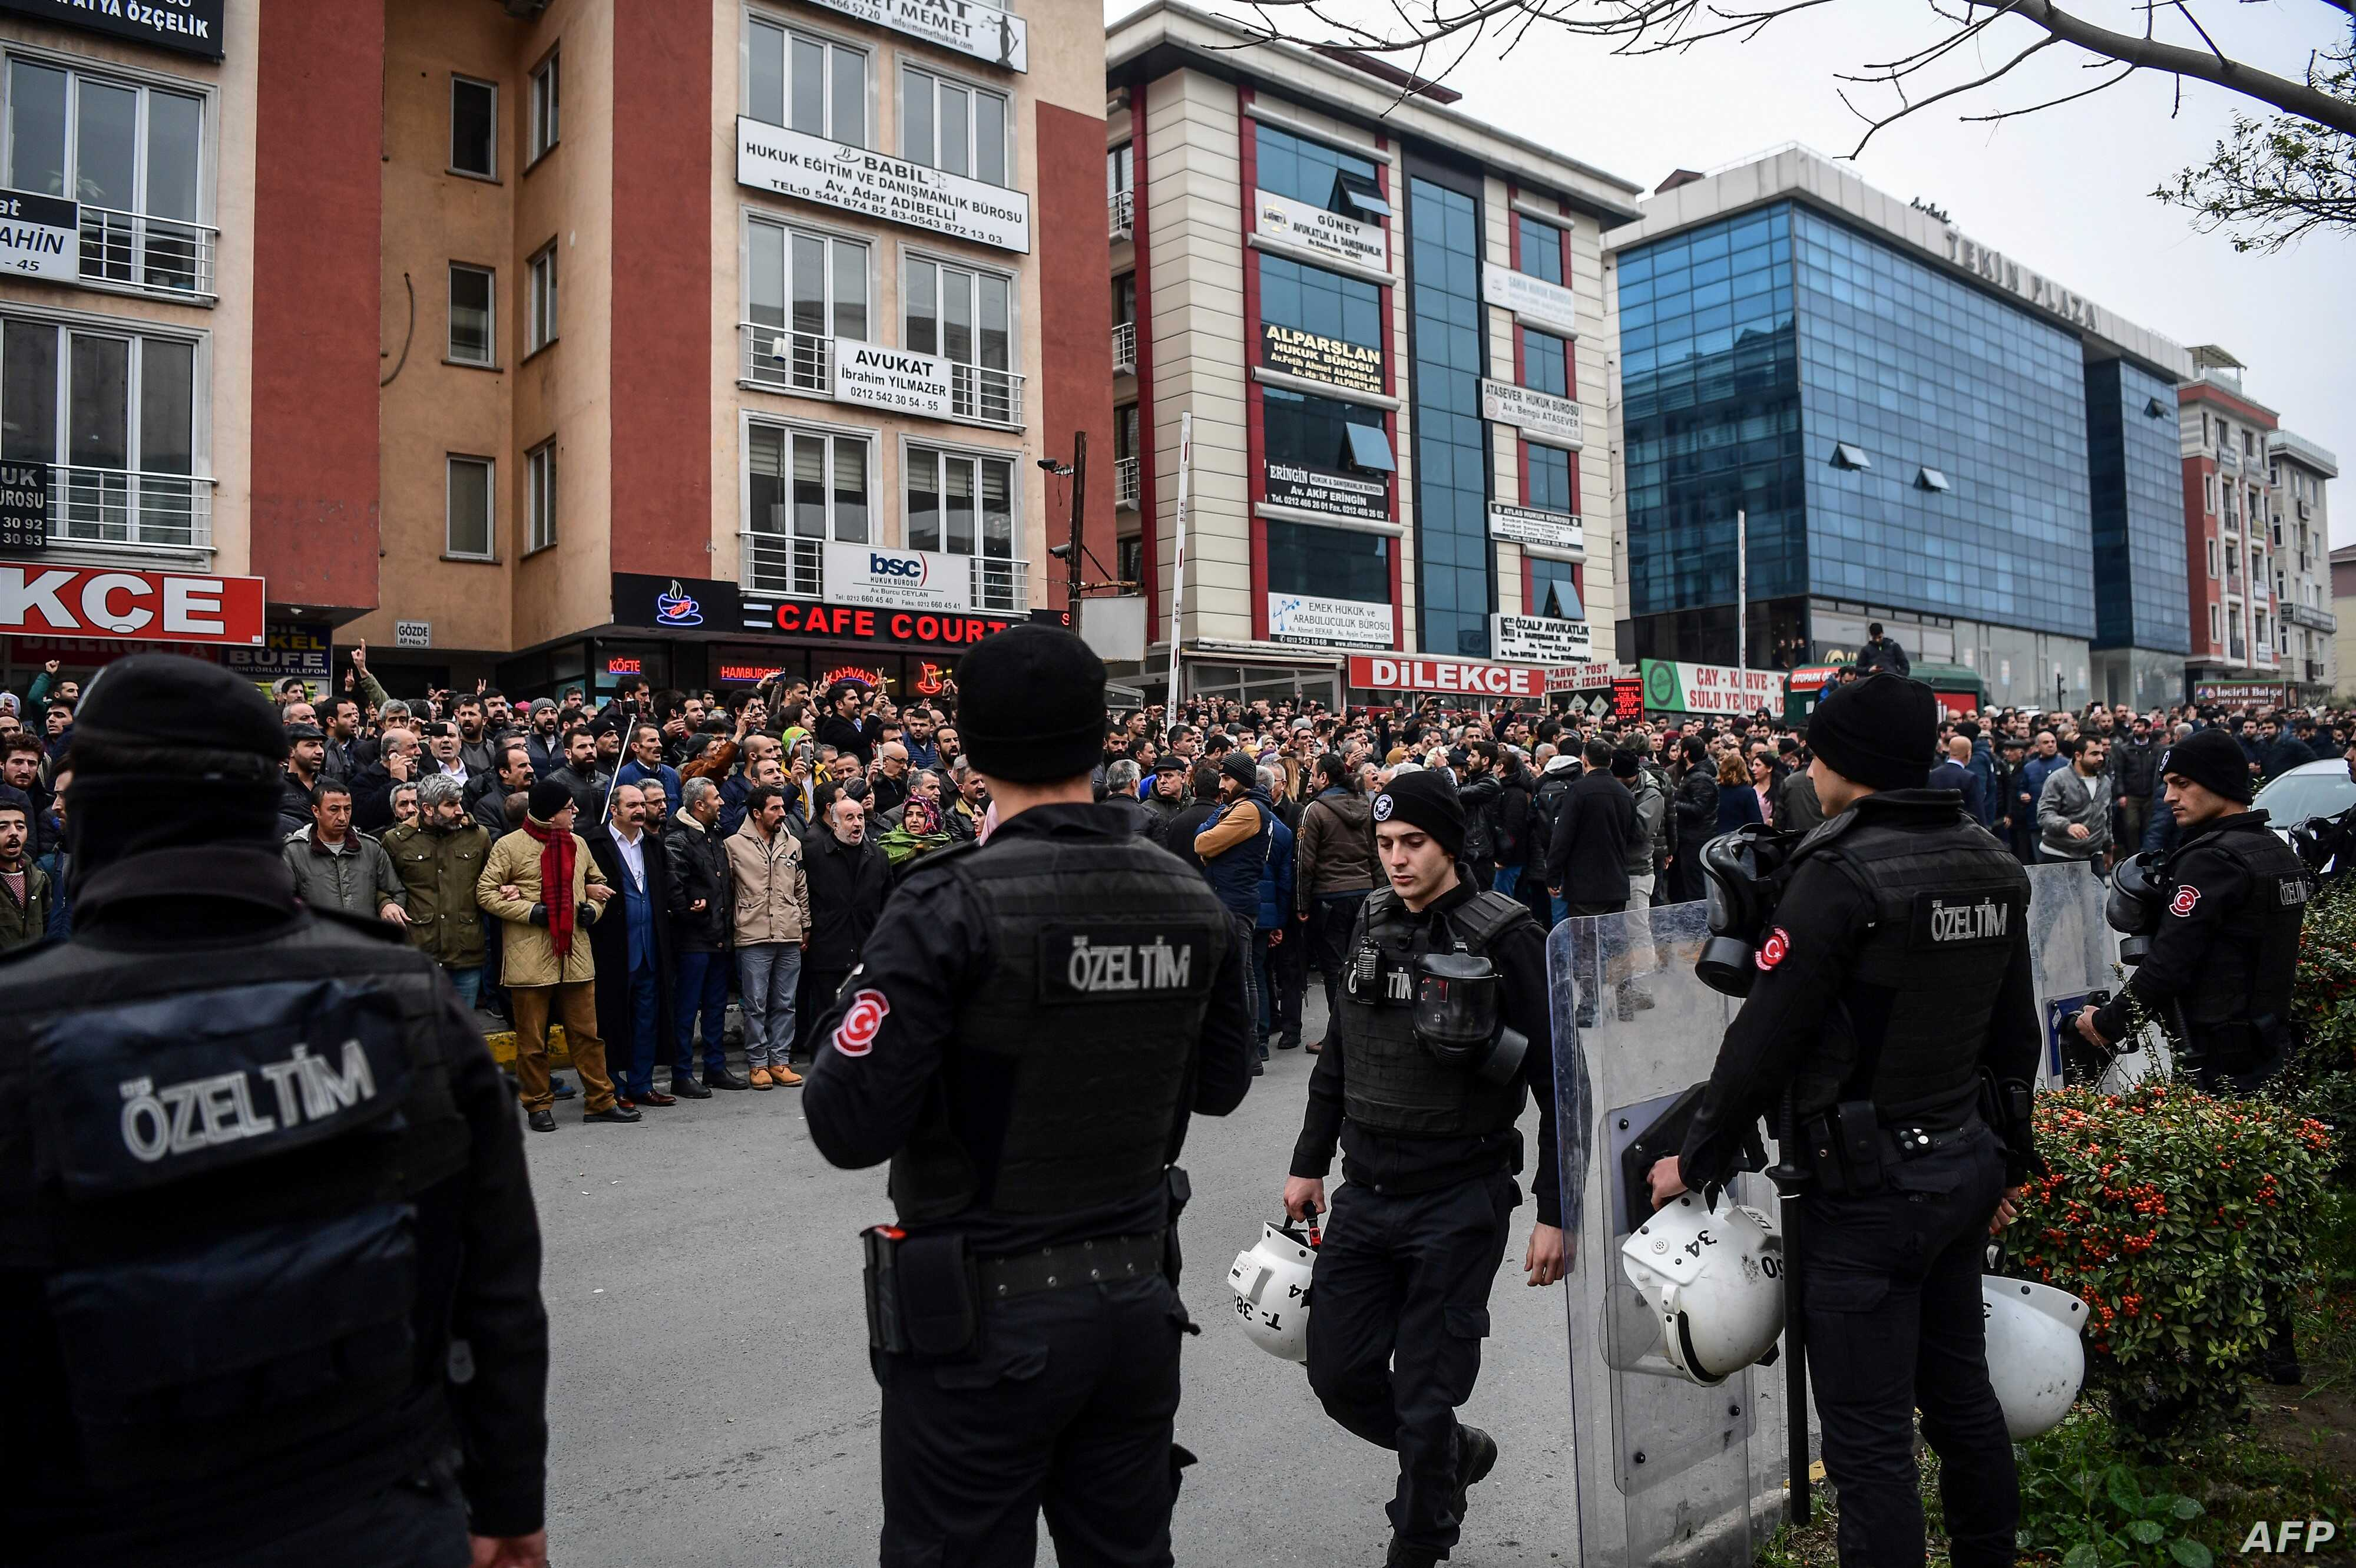 Turkish anti-riot police officers stand guard as people gather outside Bakirkoy courthouse in Istanbul, Jan. 12, 2018, in support of the jailed co-chair of the Peoples' Democratic Party (HDP).